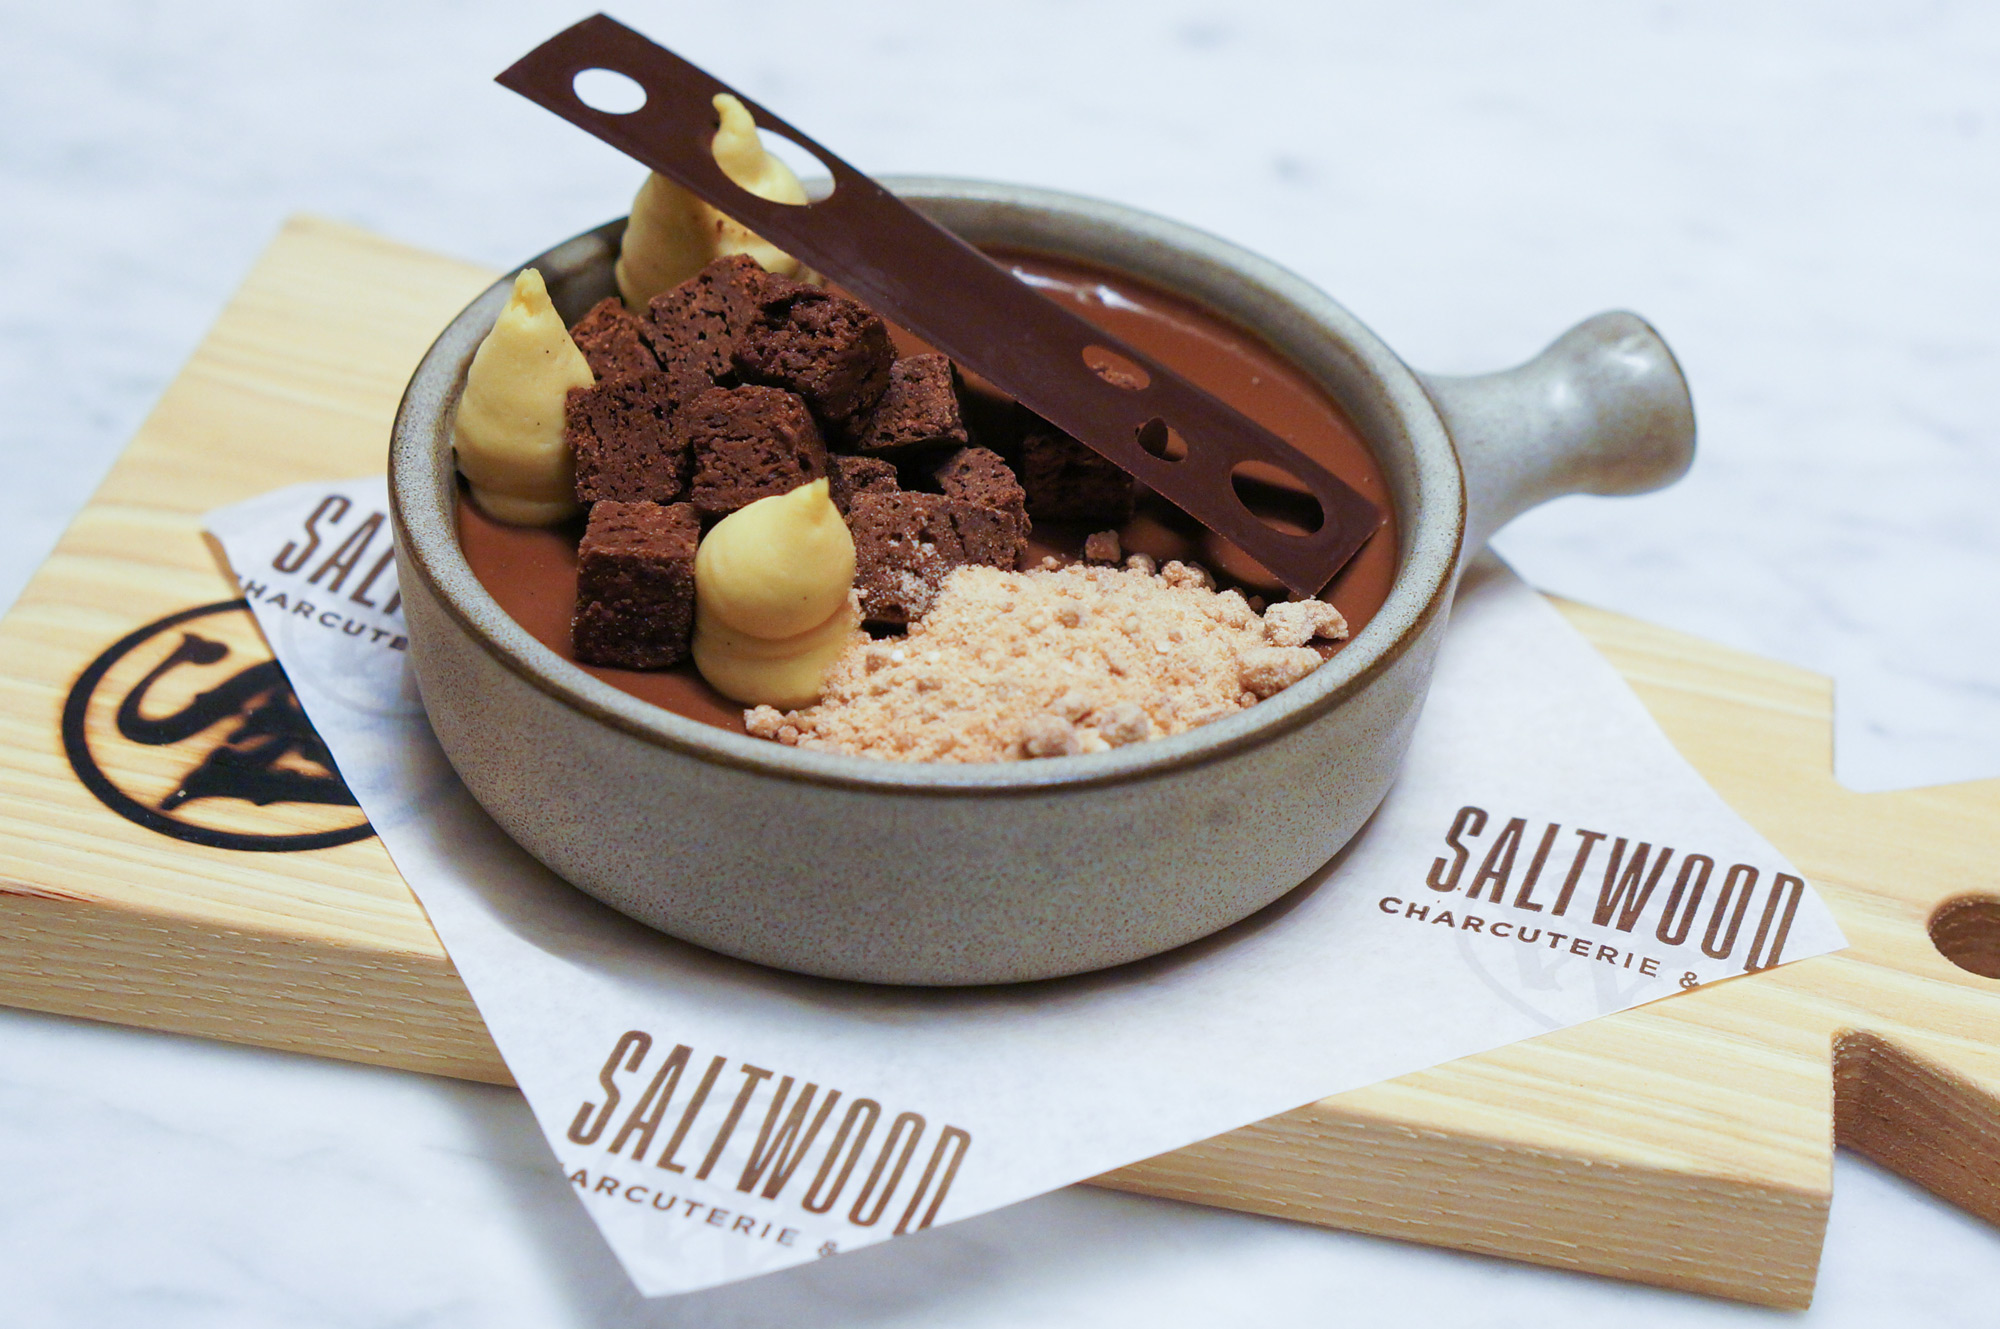 Saltwood Charcuterie & Bar Chocolate Pot de crème